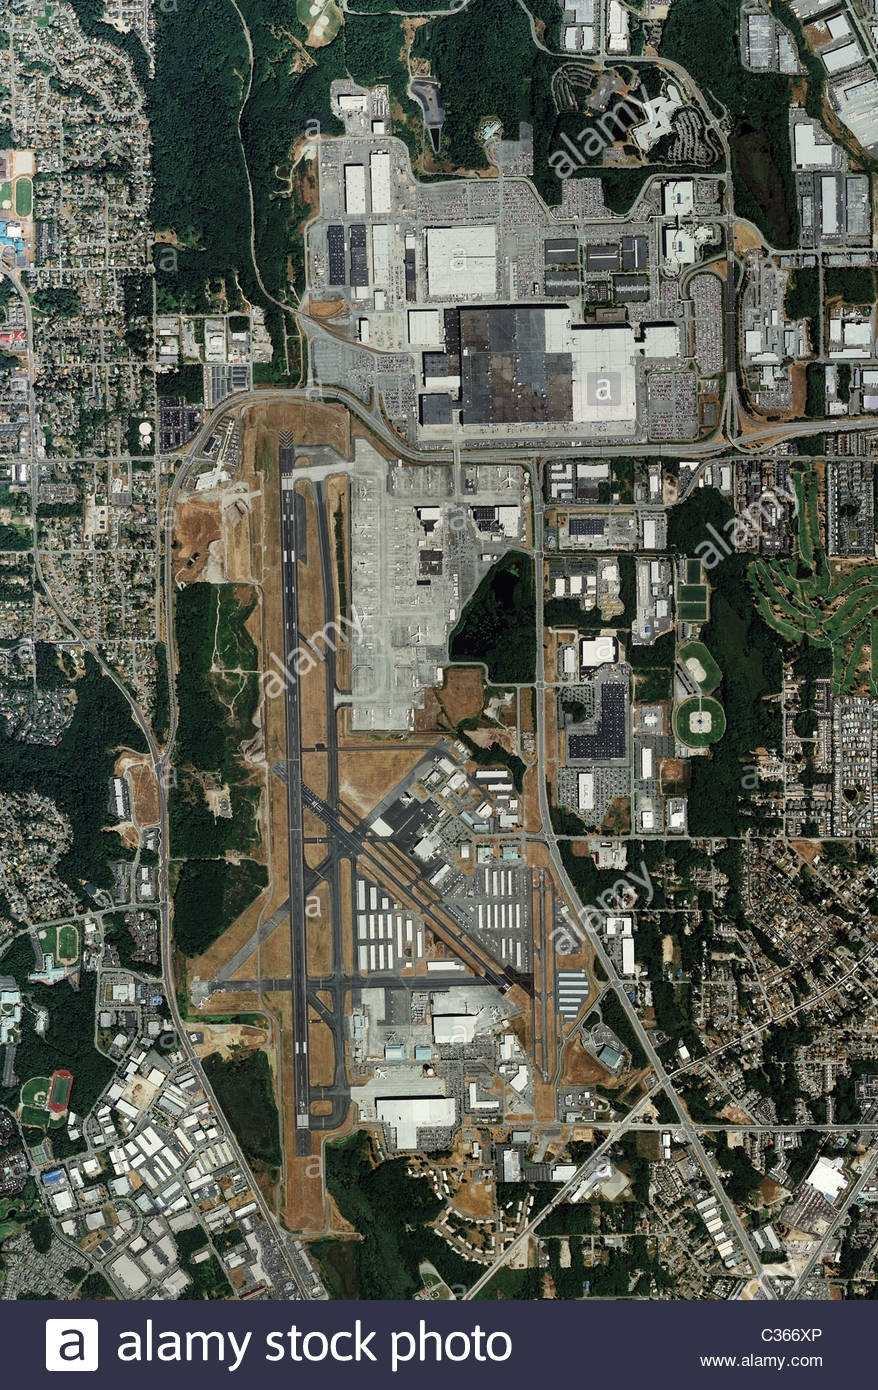 Aerial Map View Boeing Everett Factory And Paine Field regarding Boeing Factory Seattle Map